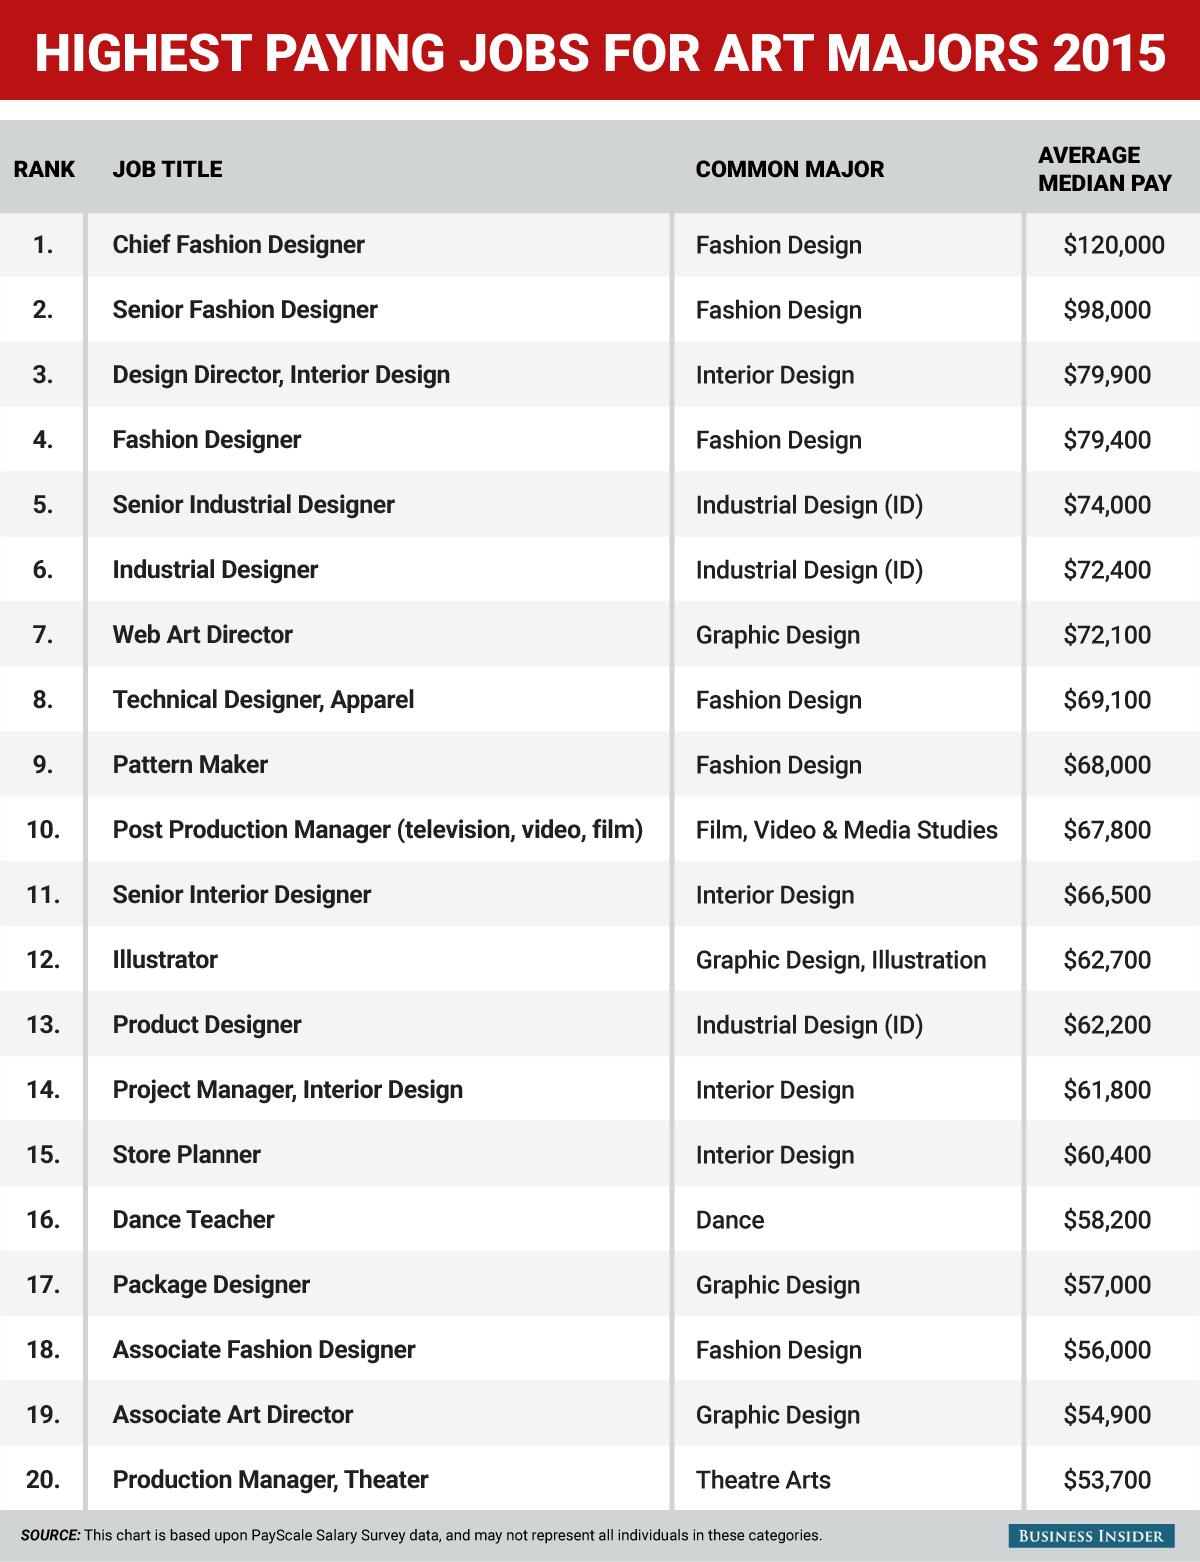 The 20 highestpaying jobs for art and design majors